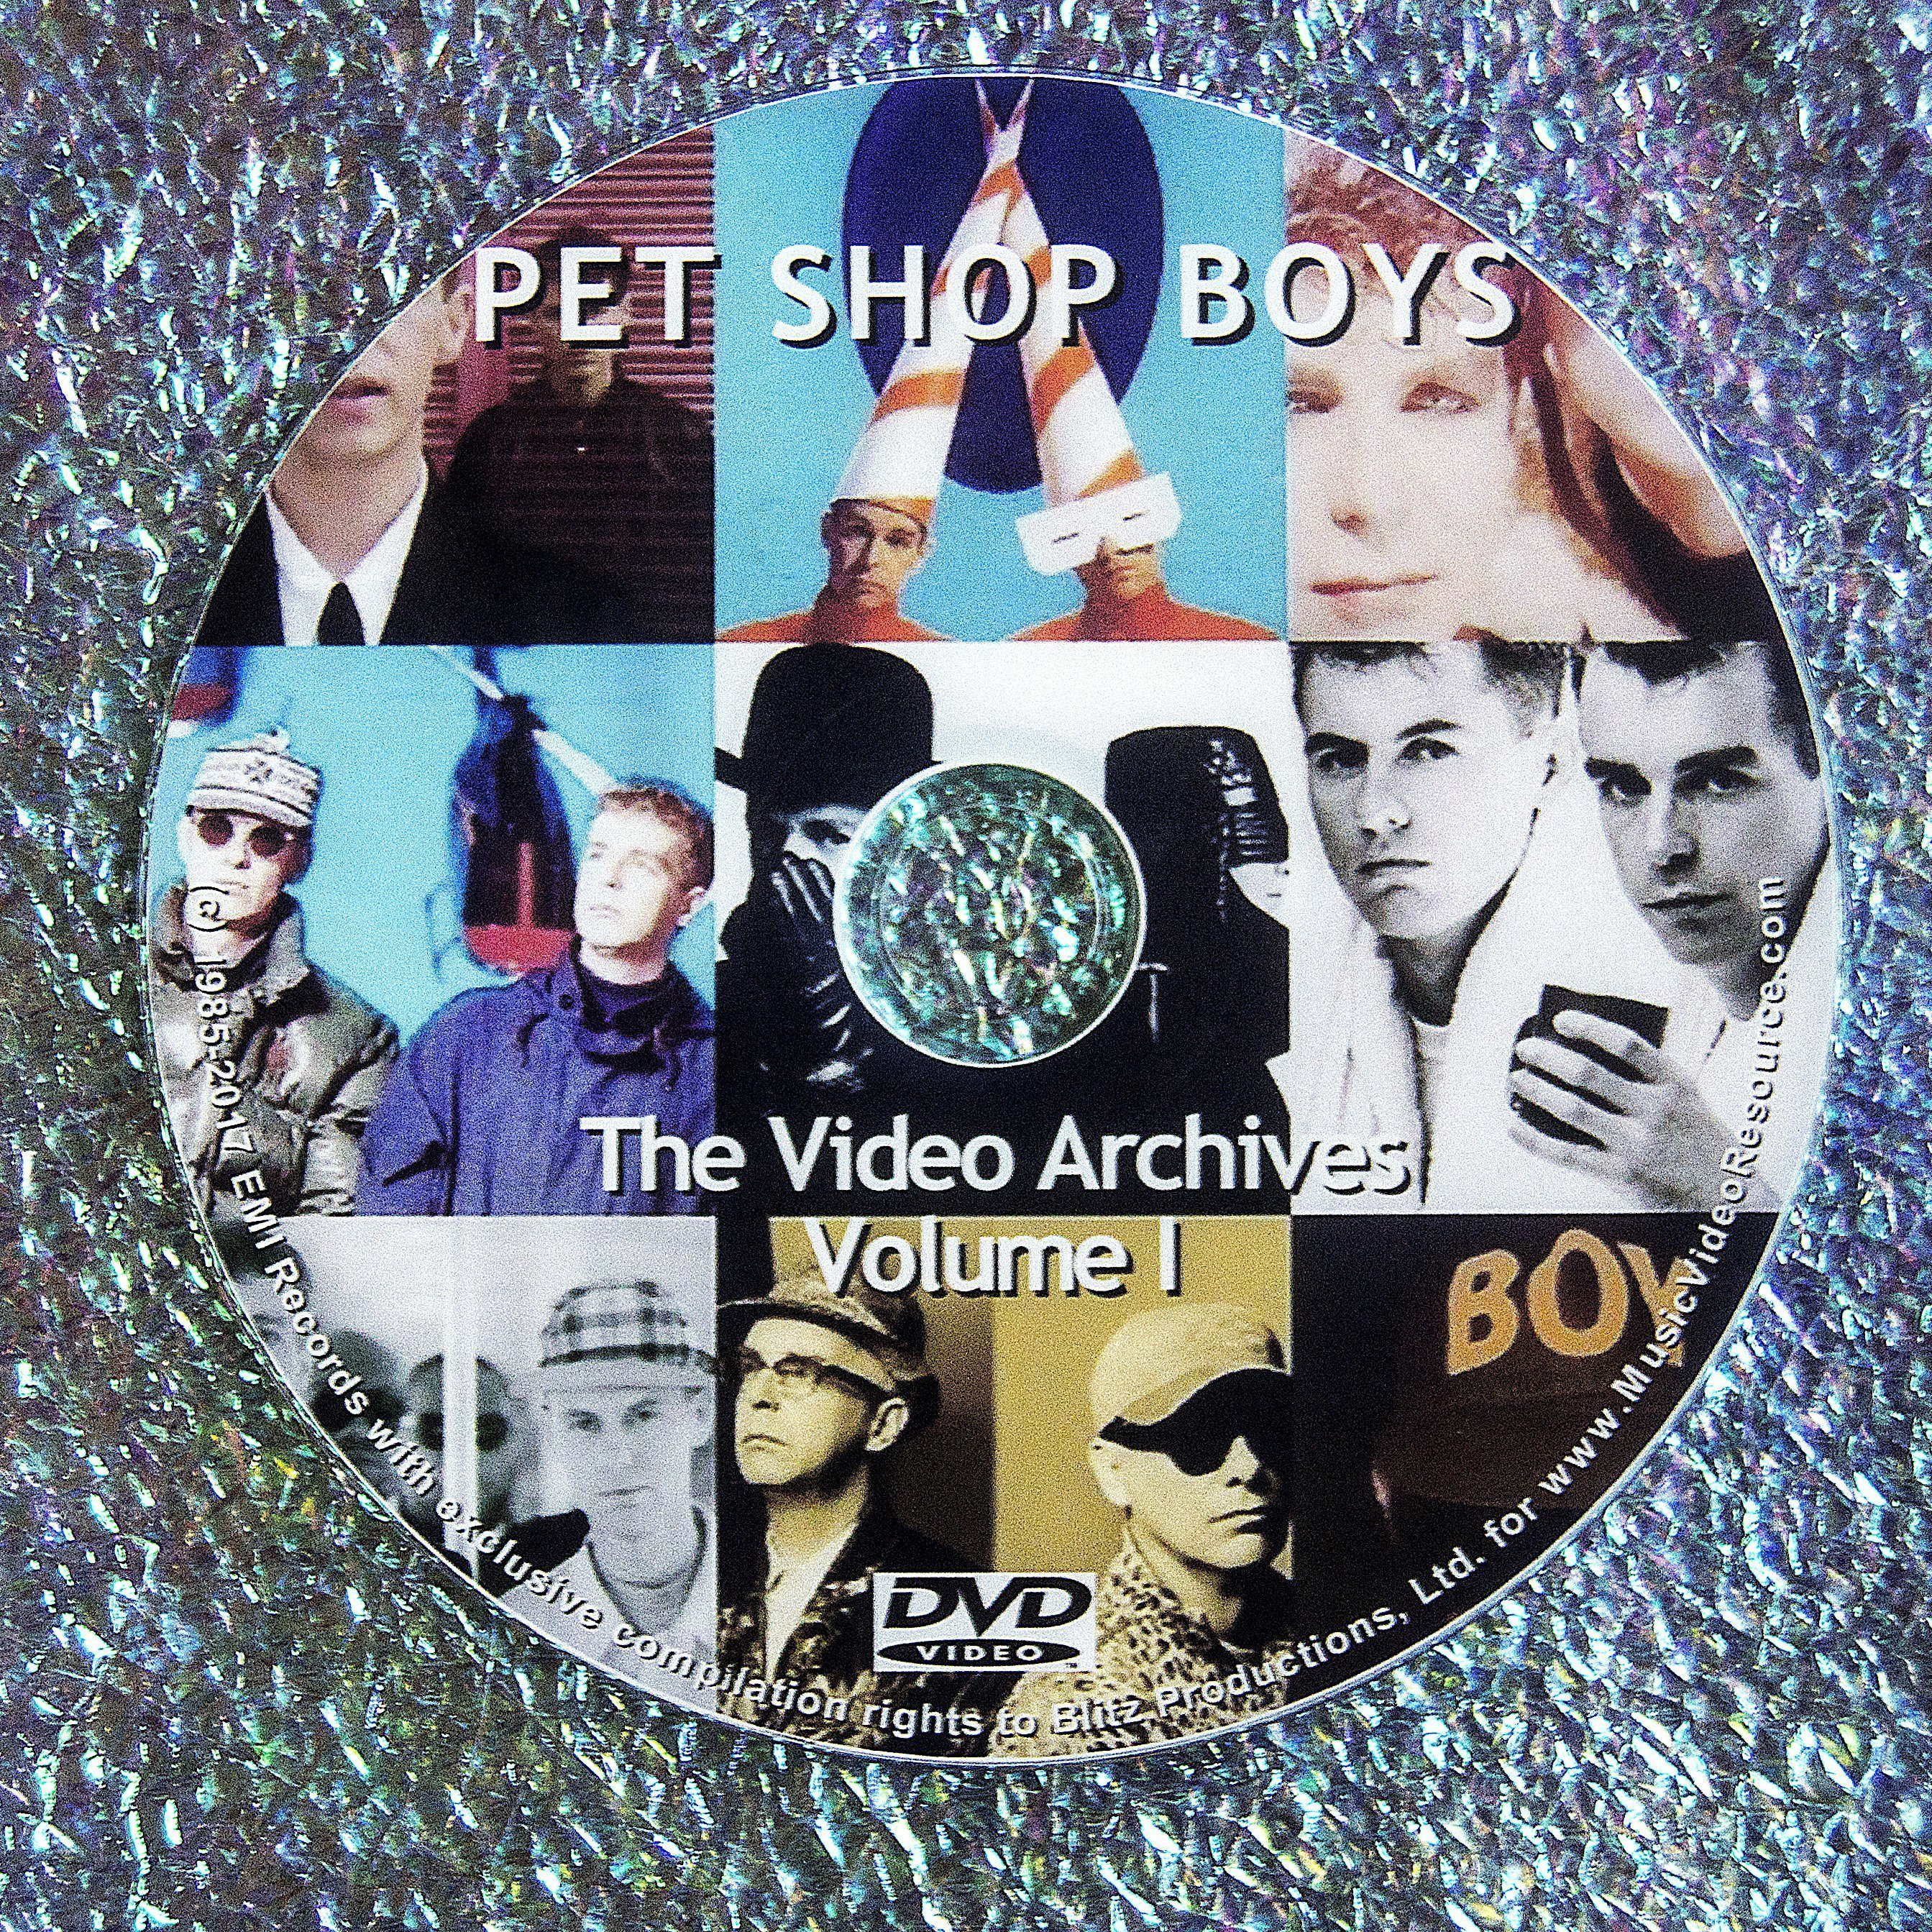 PET SHOP BOYS VIDEO ARCHIVES   VOLUME I